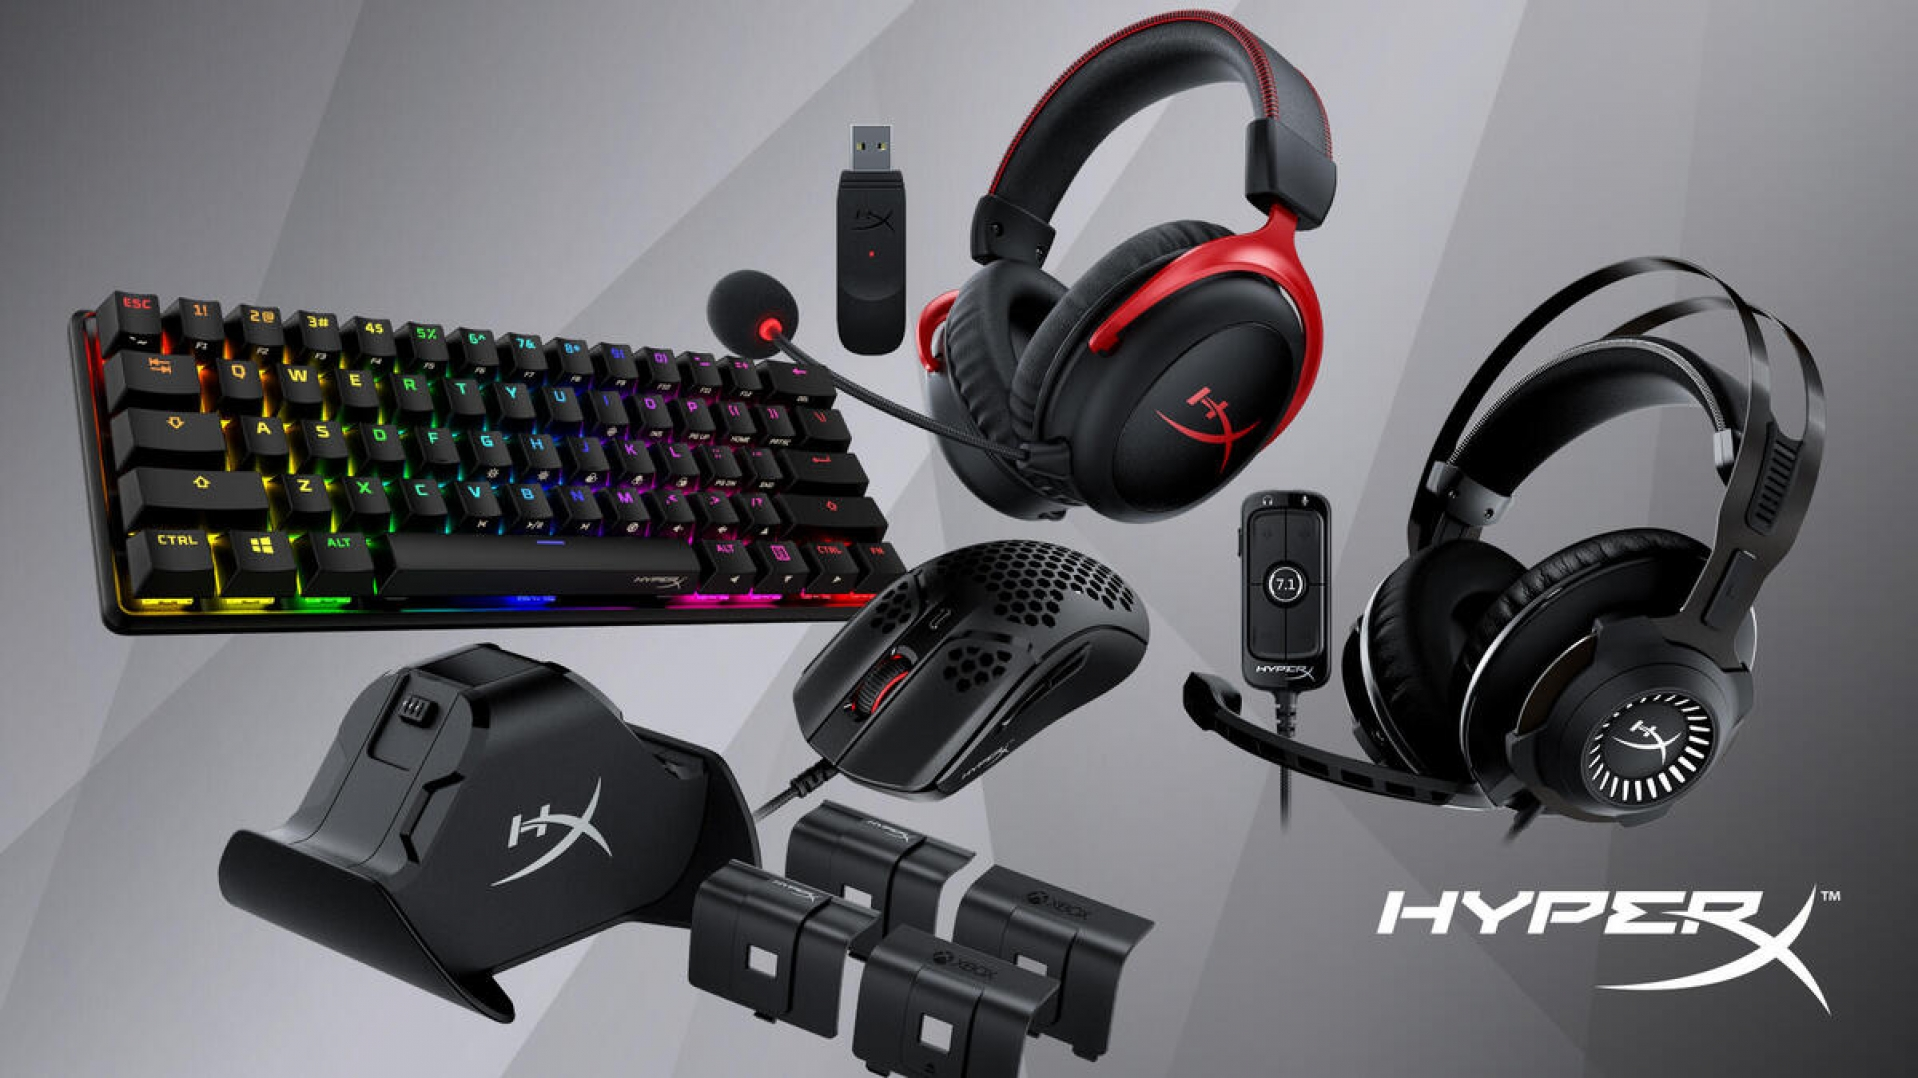 HP acquiert HyperX de Kingston pour 425 millions de dollars